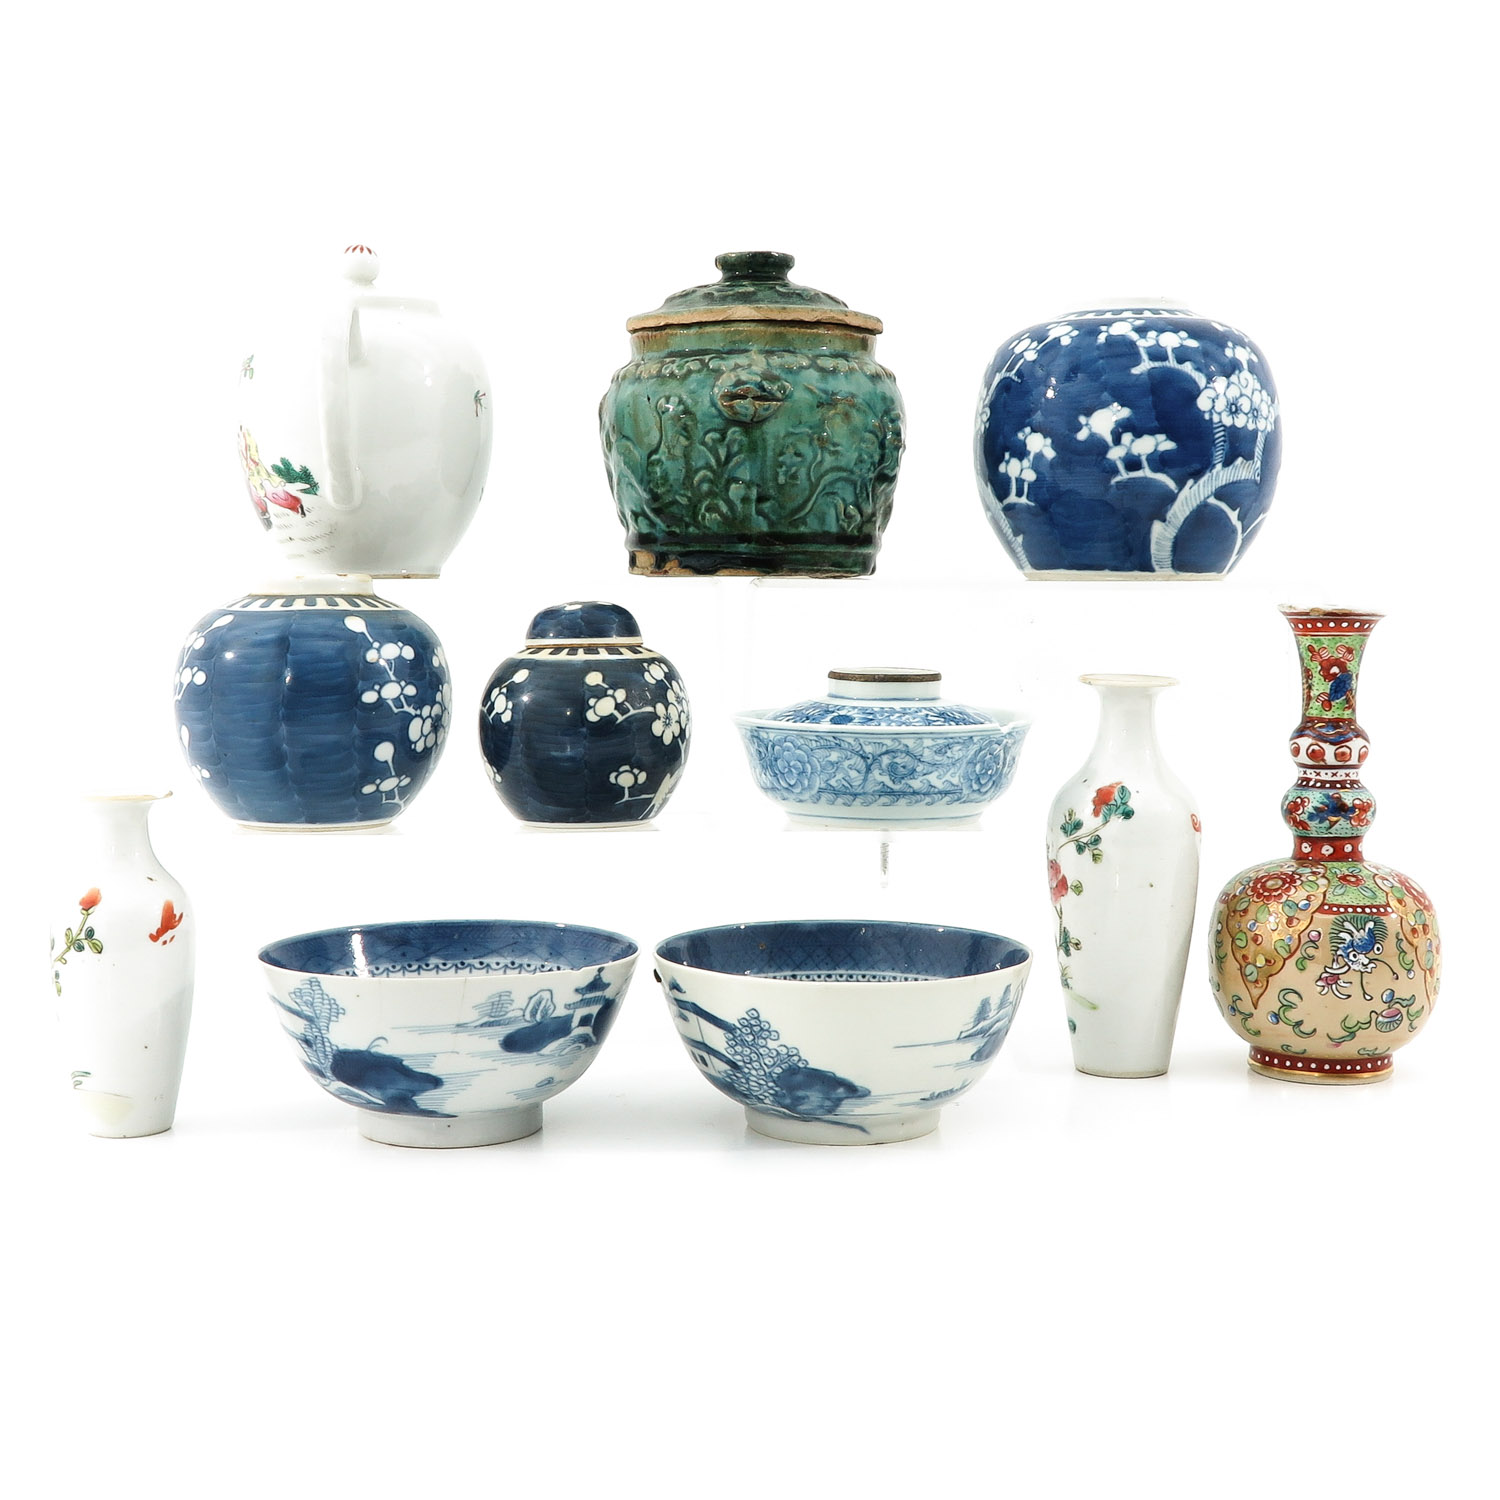 A Large Collection of Porcelain - Image 2 of 10